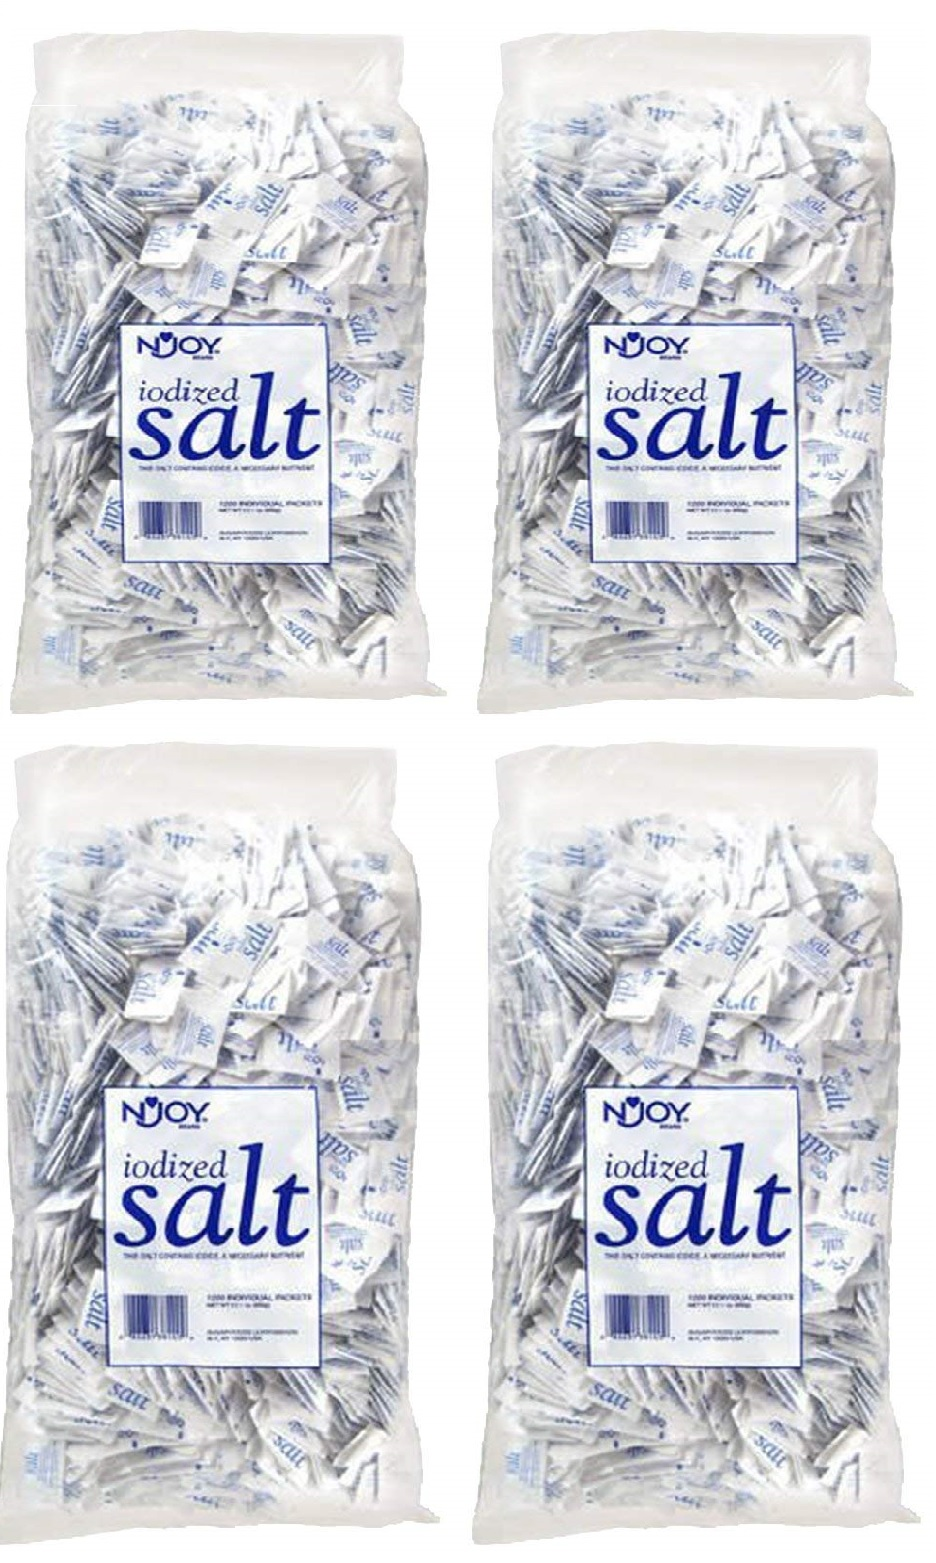 N'Joy Iodized Salt - 1,200 ct.5 gm Packets (Pack of 4)